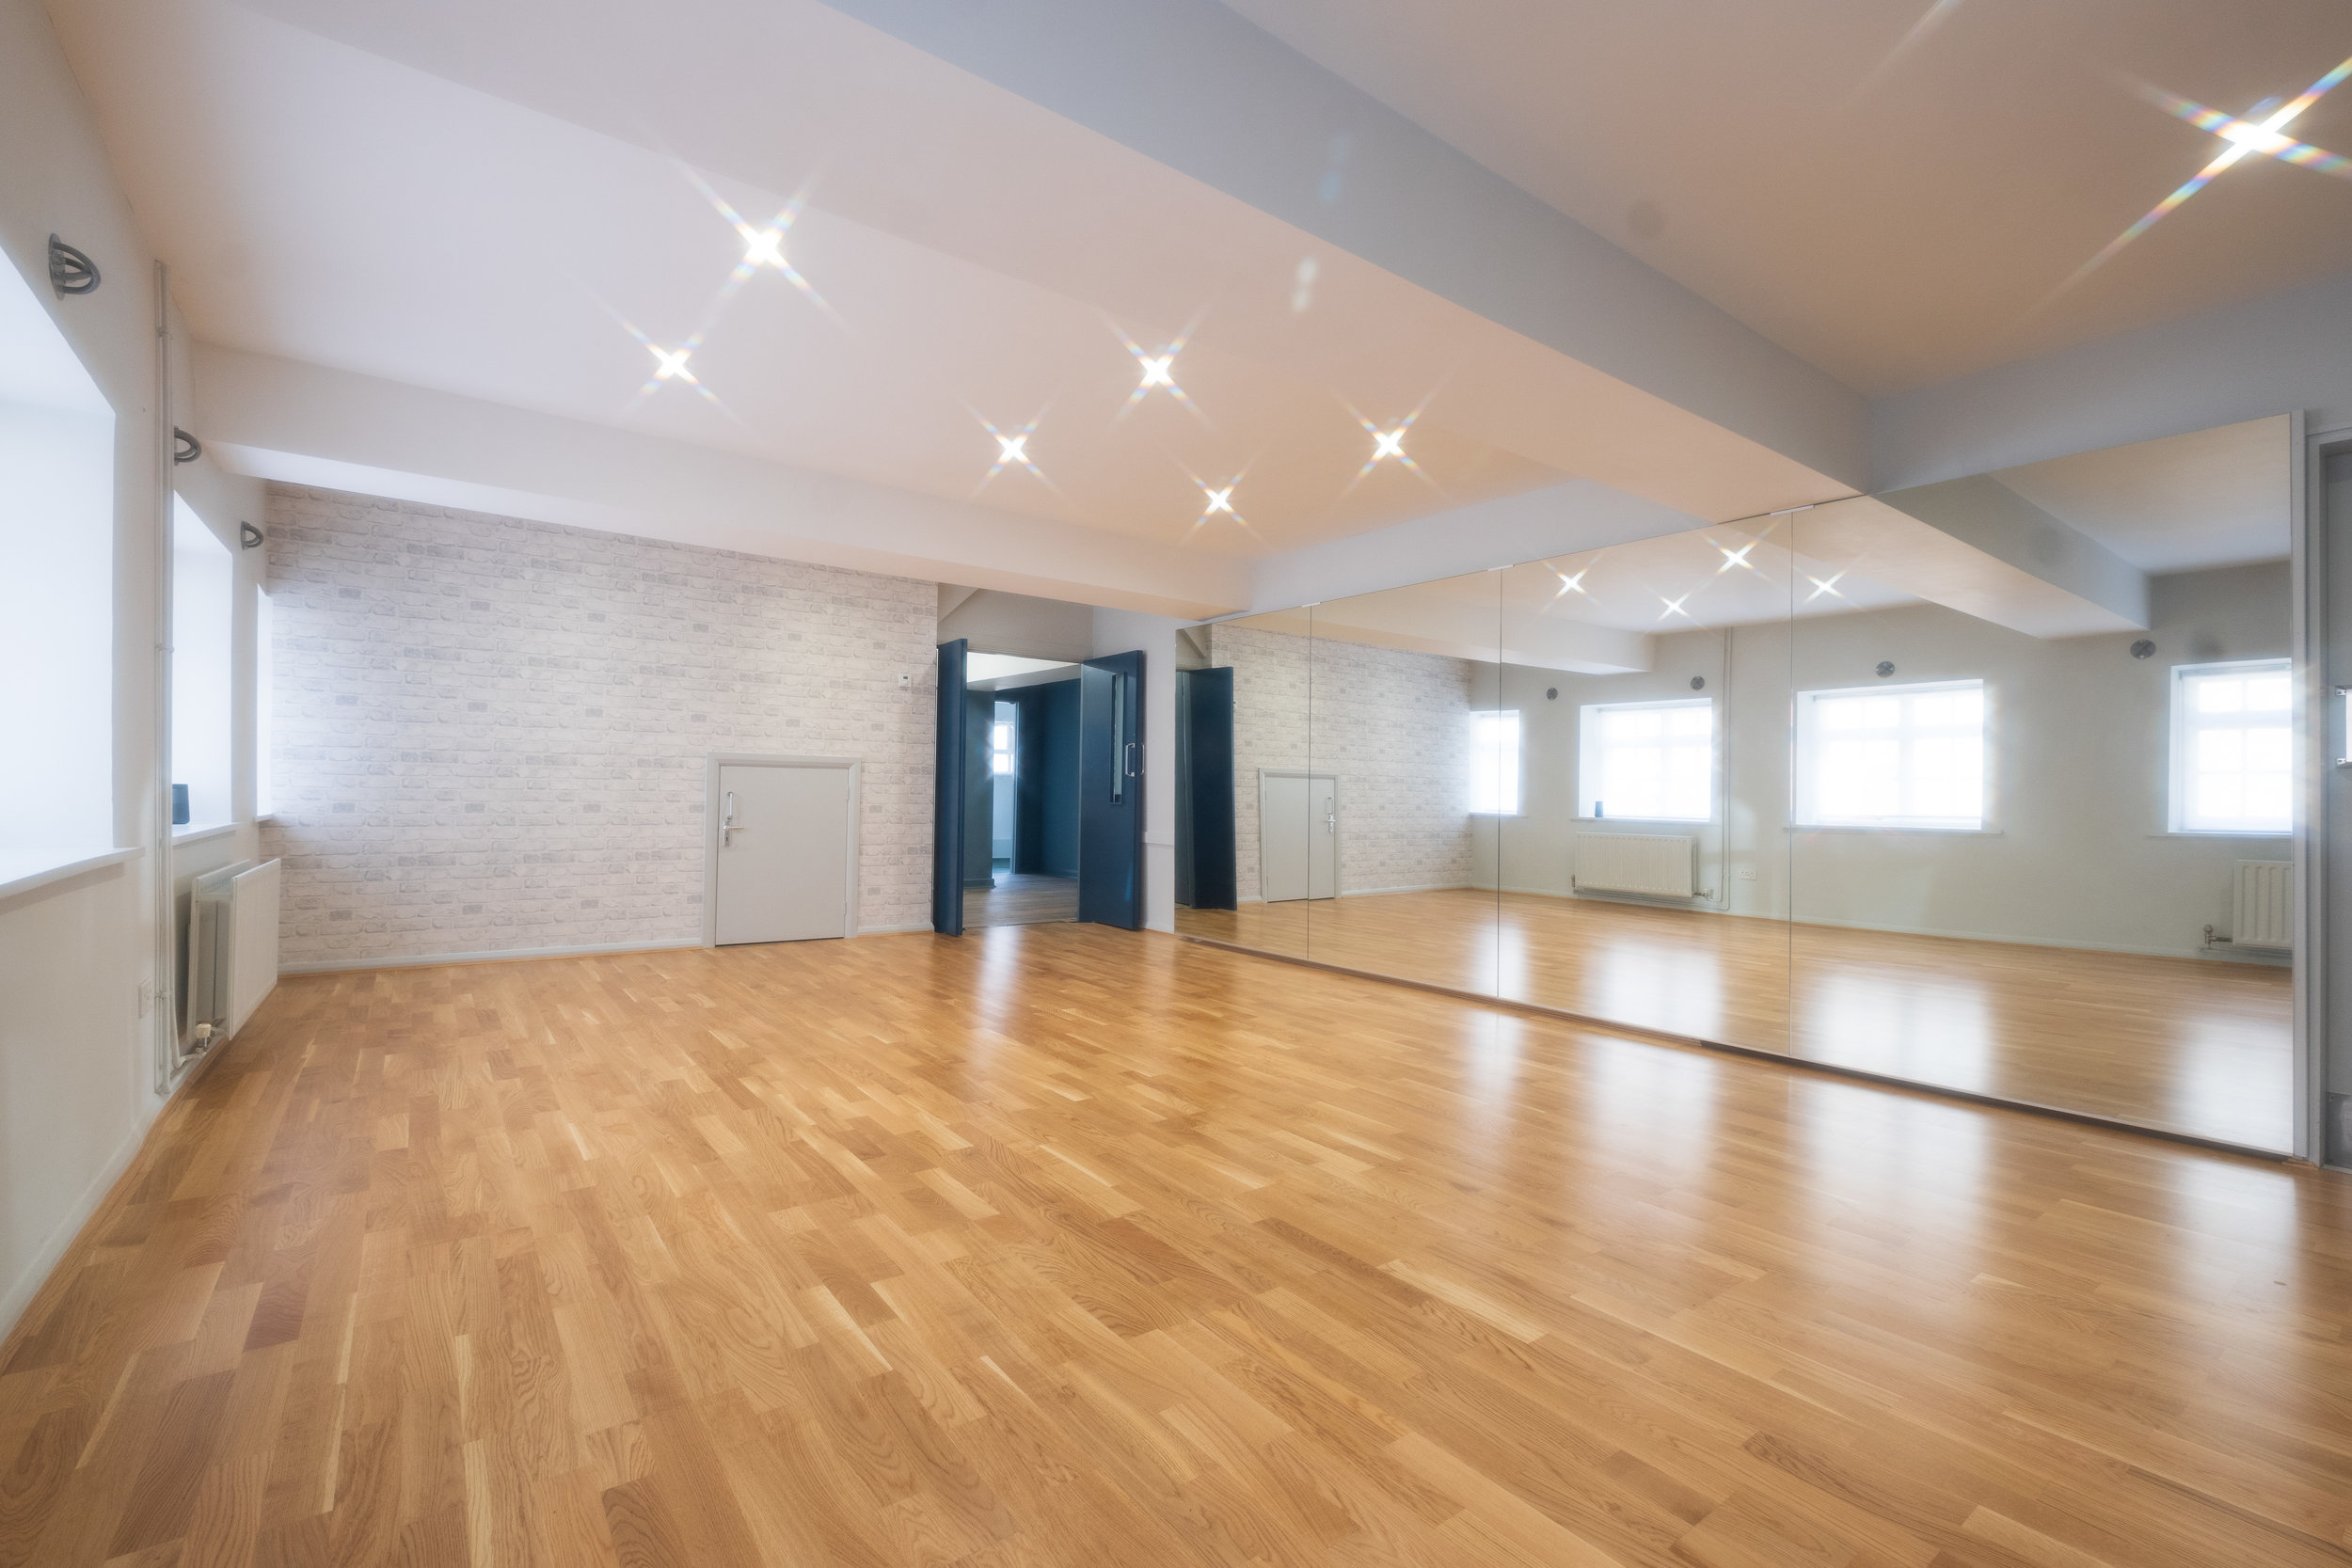 Your Fitness Sanctuary - Nestled in the centre of glorious Petworth sits Rah Fitness. Complete with washroom facilities, reception area, changing rooms and two fitness studios, we're perfectly set up to cater for your exercise & wellbeing needs.